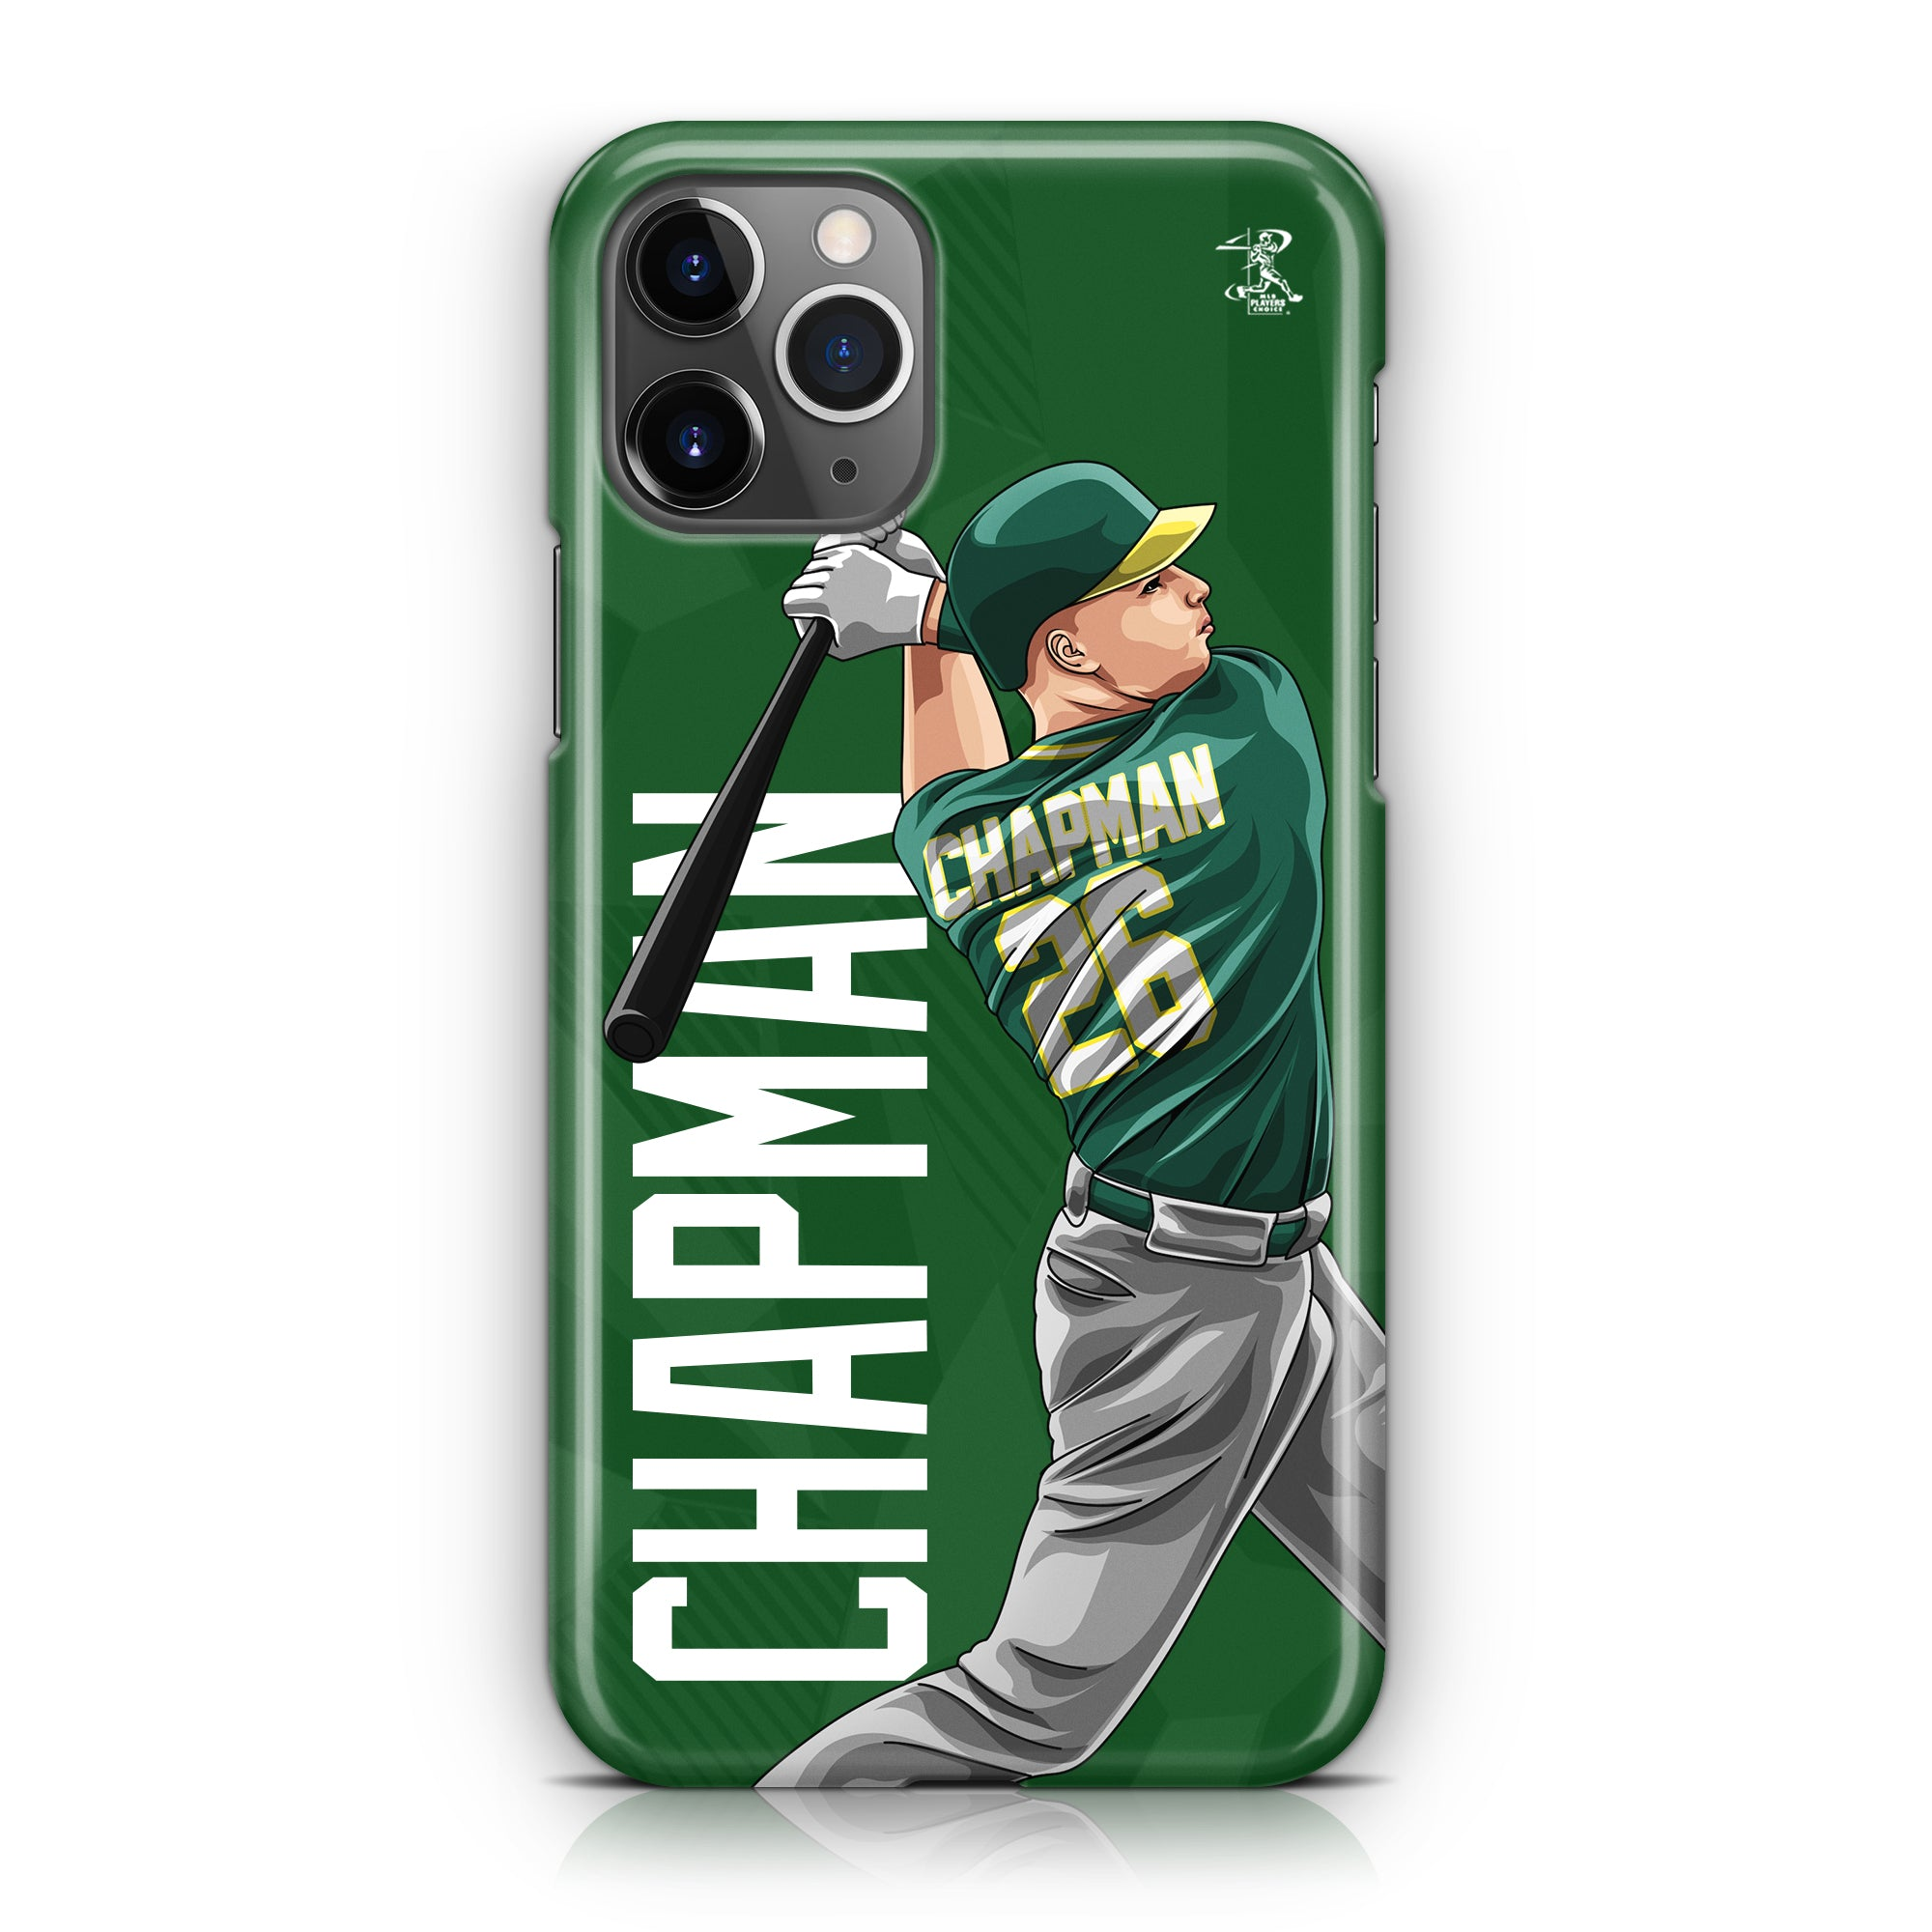 Chapman Star Series 2.0 Case